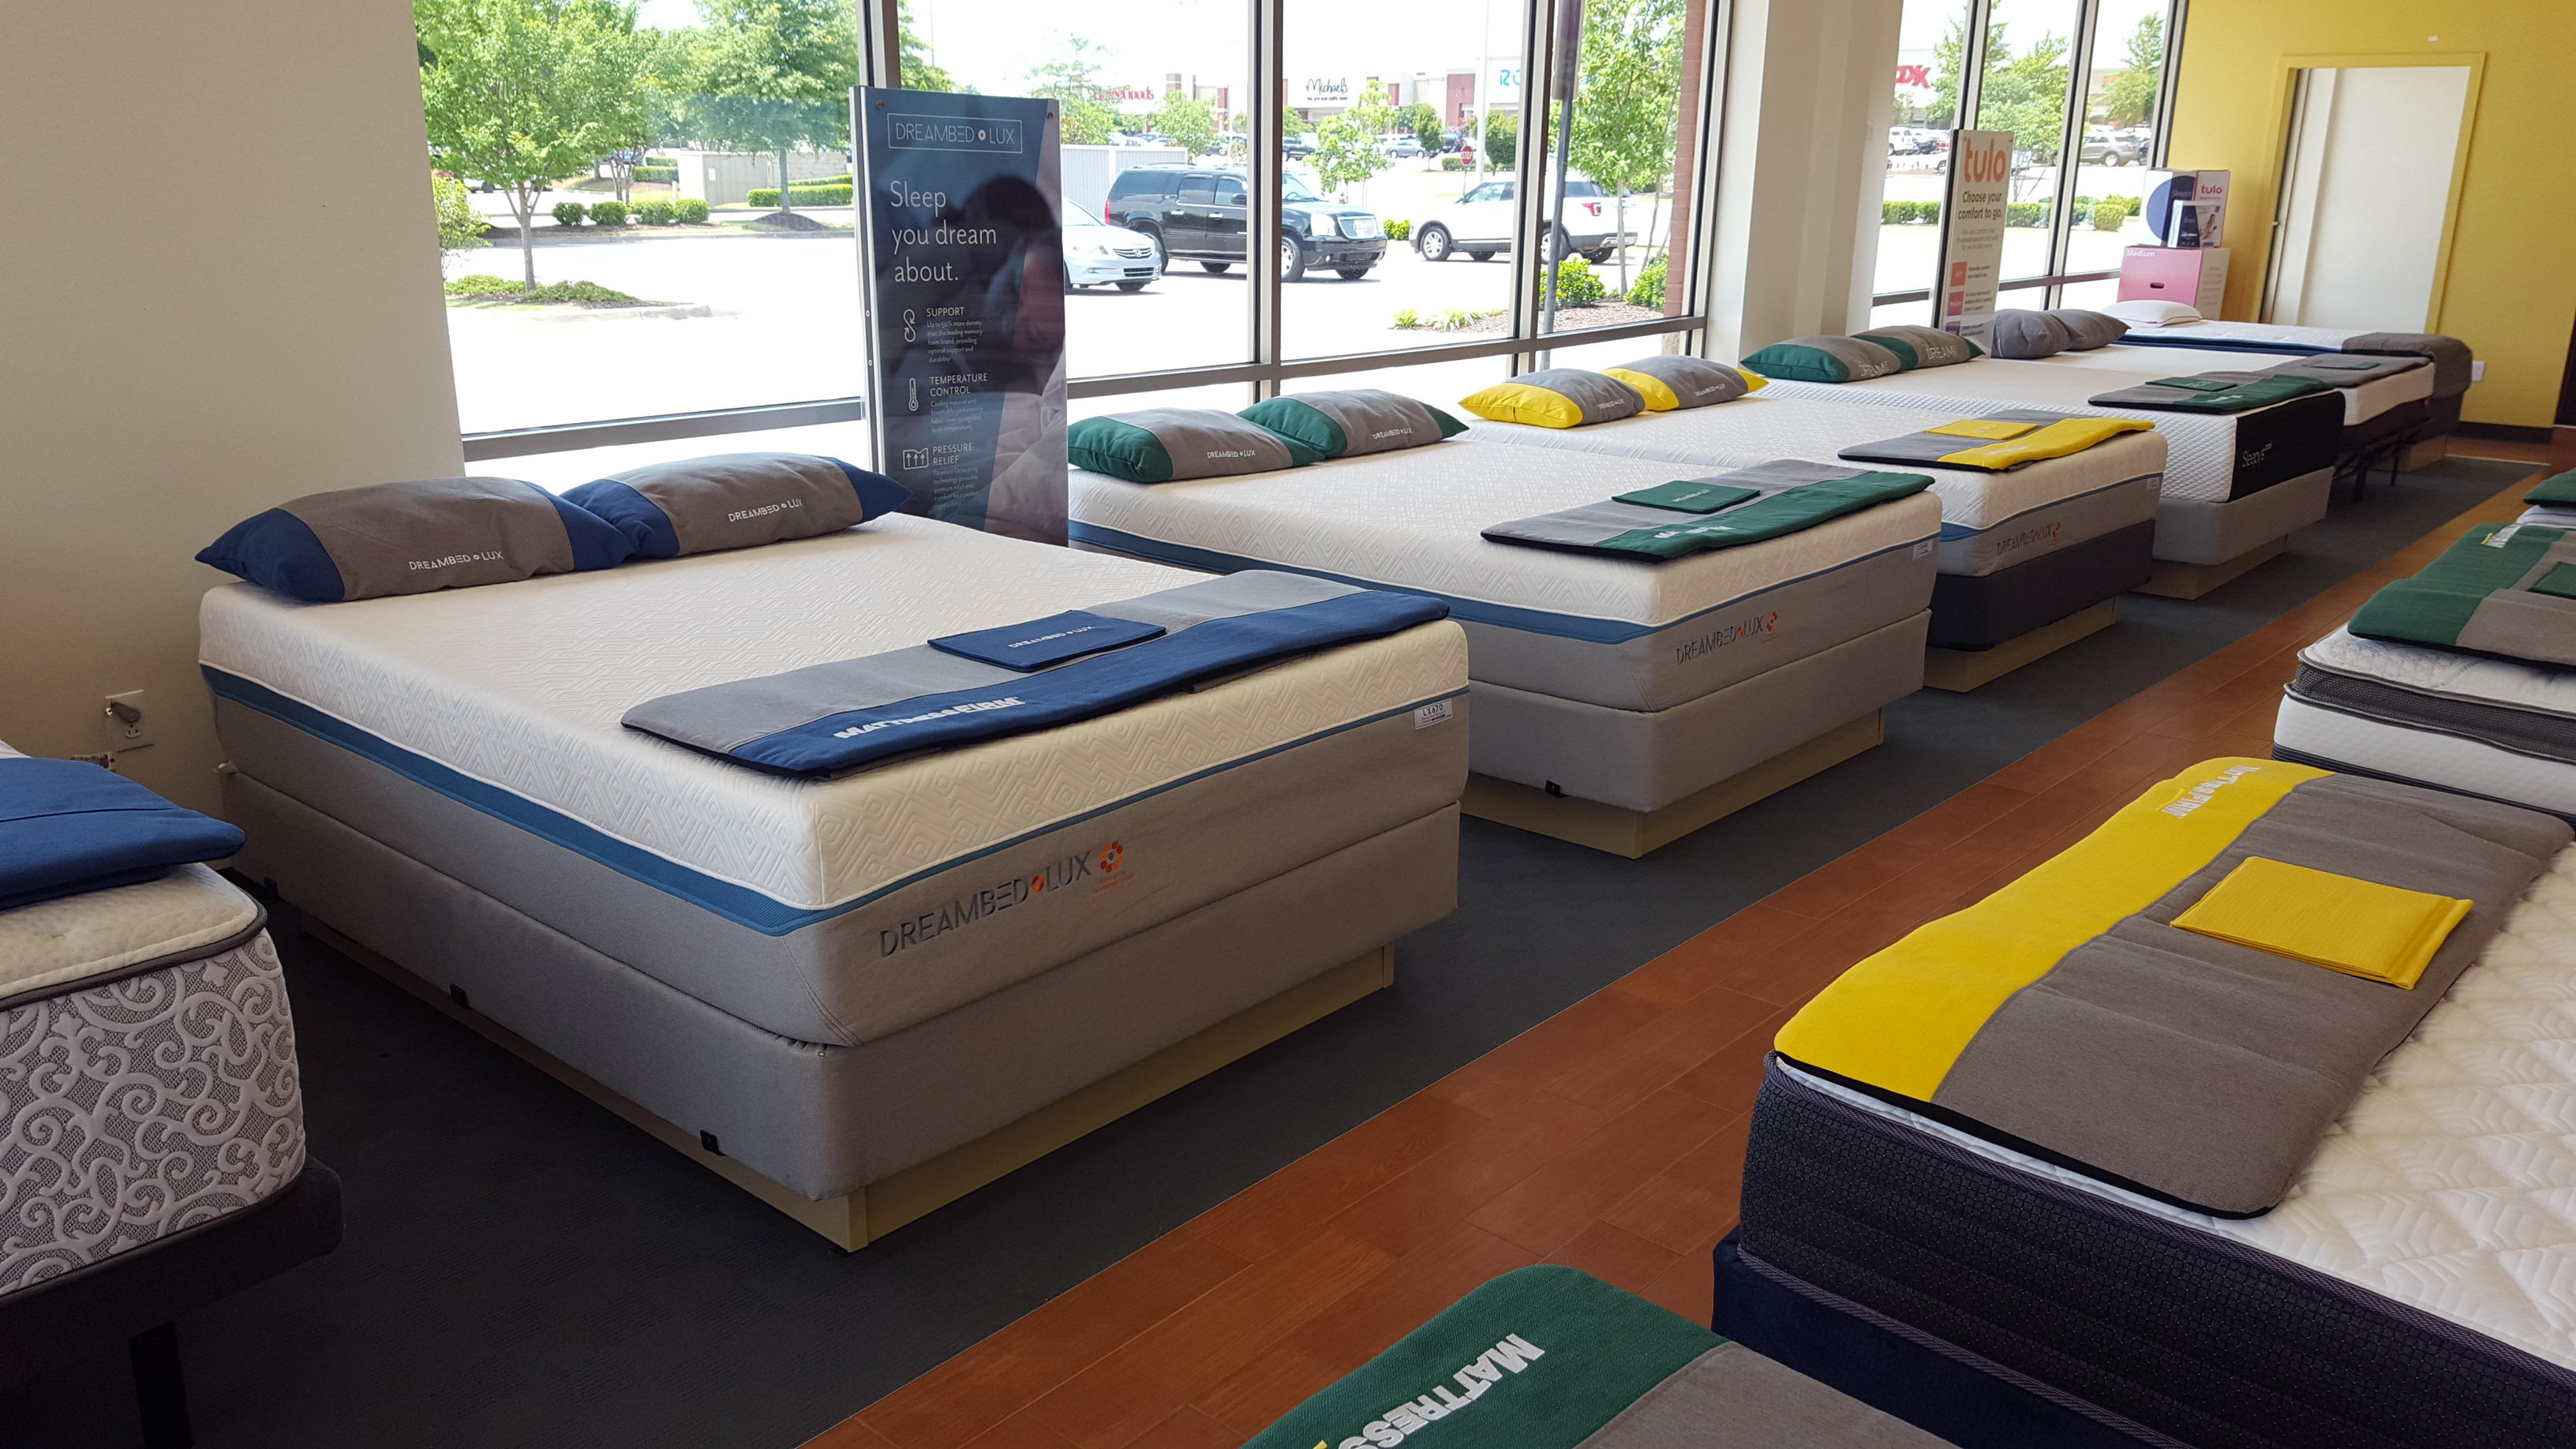 Mattress Firm Wedge Olive Branch image 5